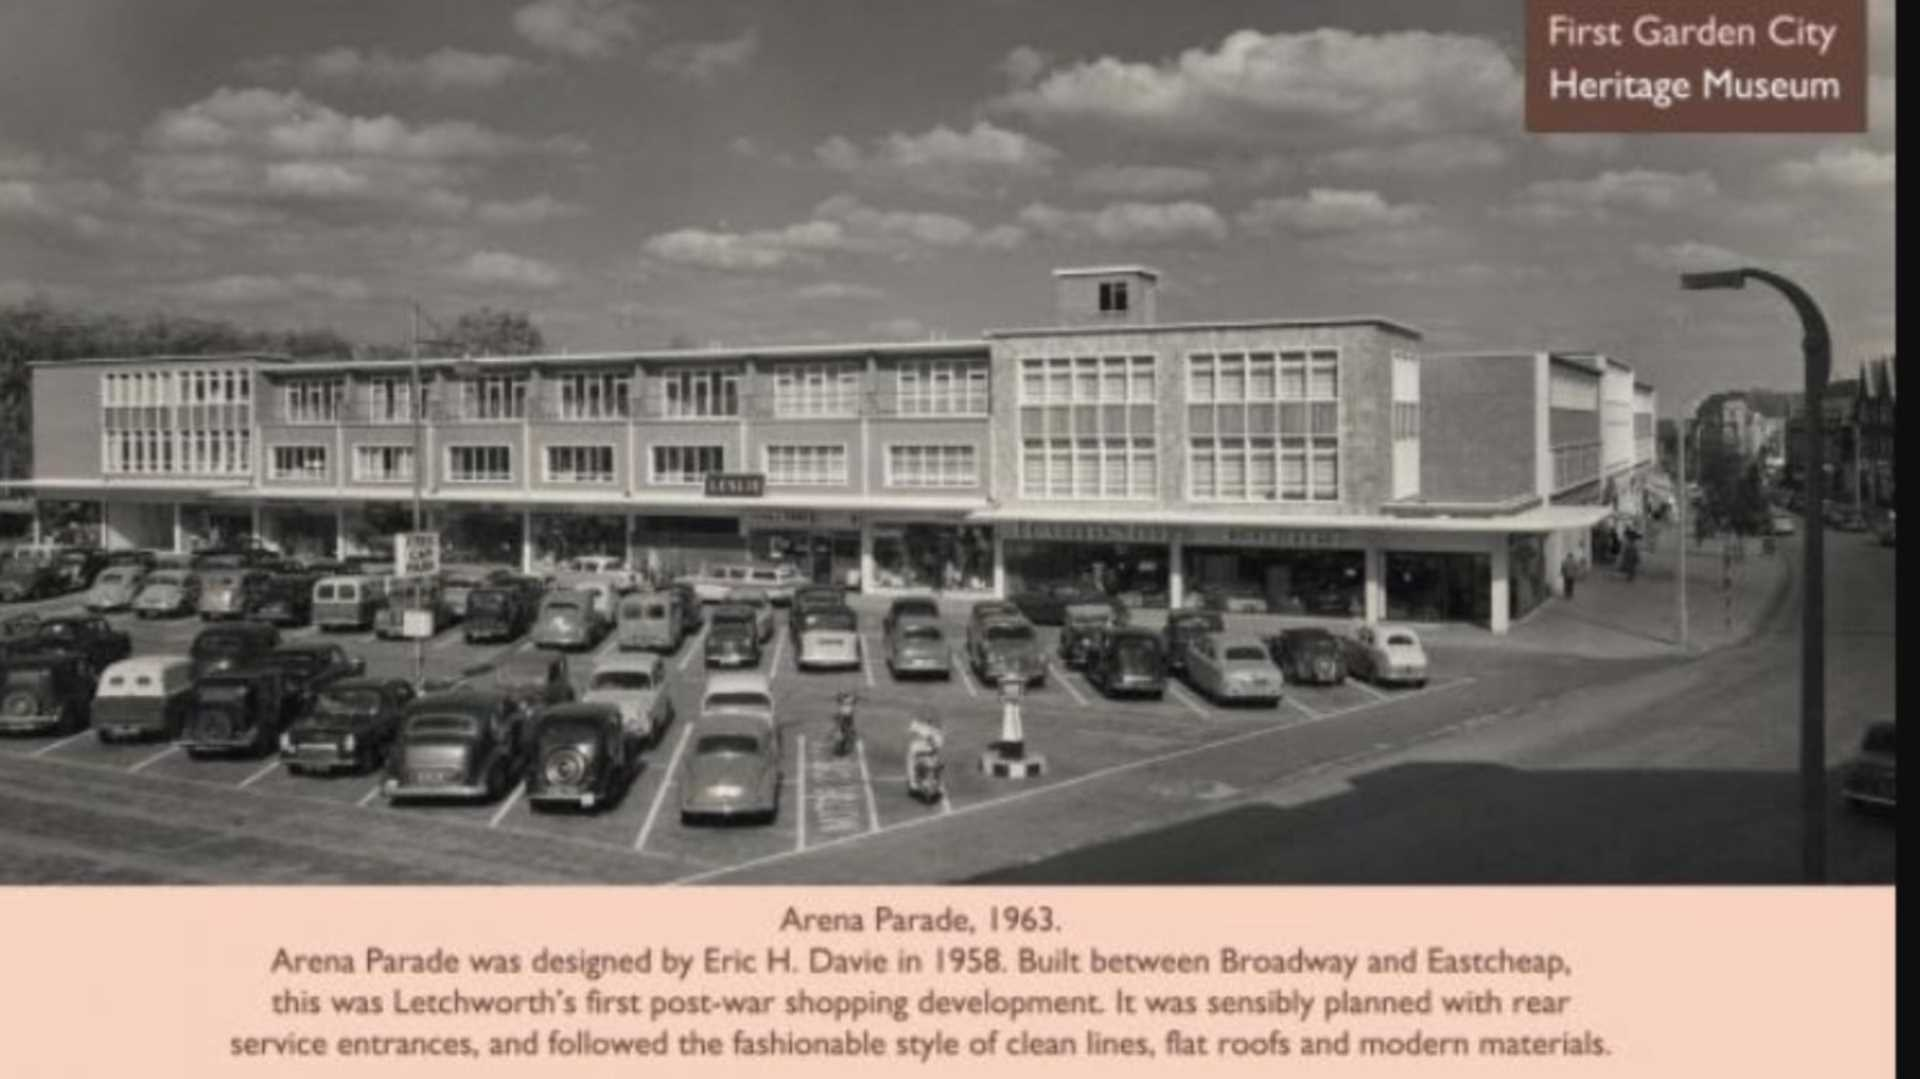 Our office location Arena Parade in 1963!